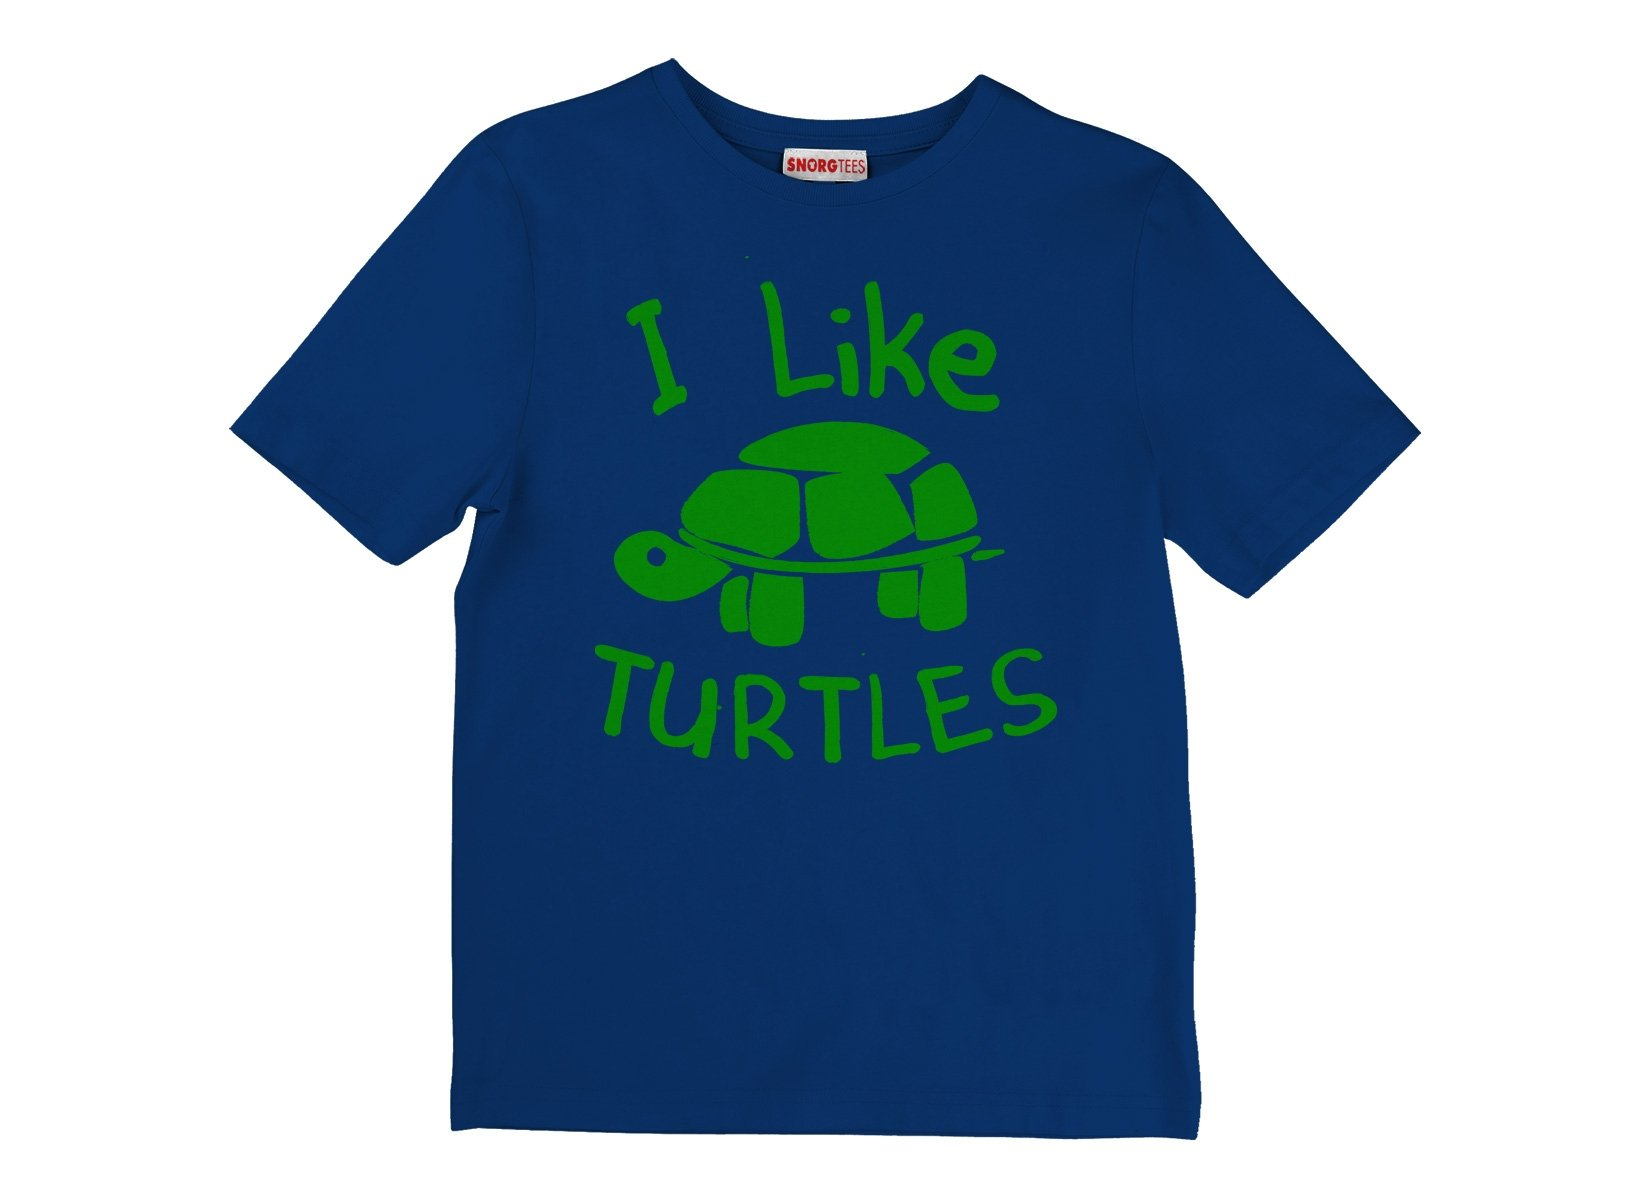 I Like Turtles on Kids T-Shirt